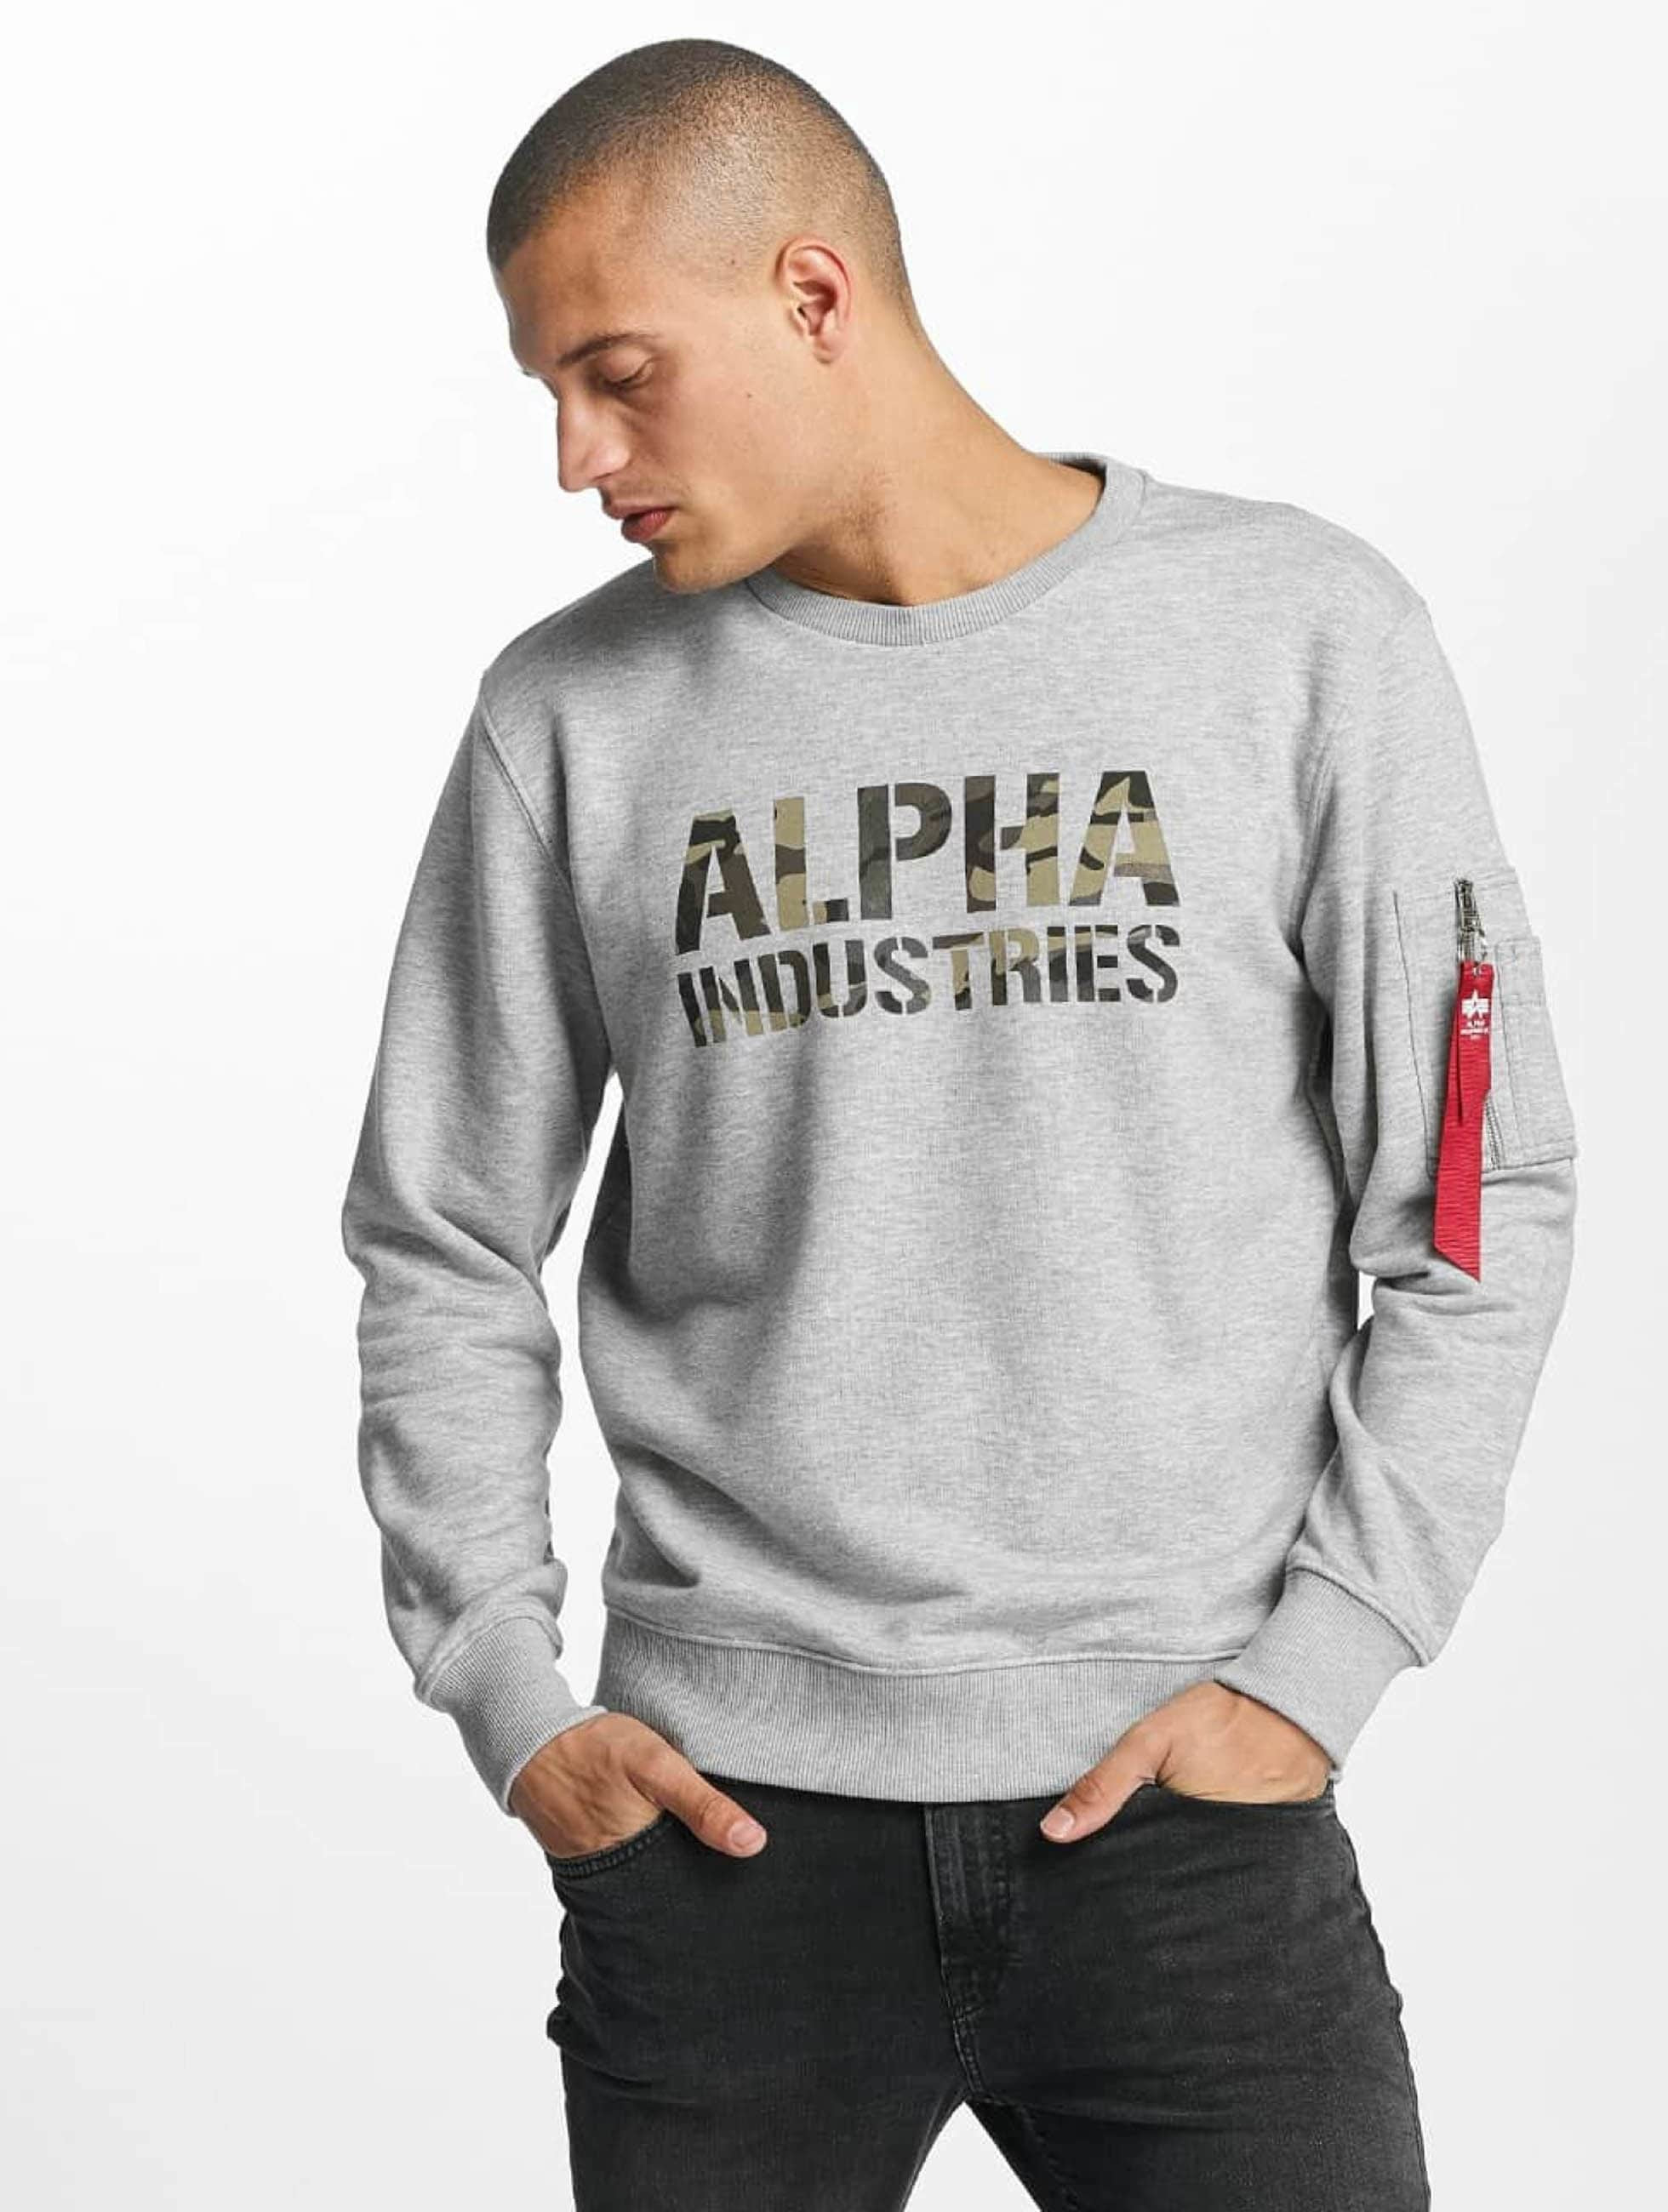 alpha industries herren oberteile pullover camo print ebay. Black Bedroom Furniture Sets. Home Design Ideas